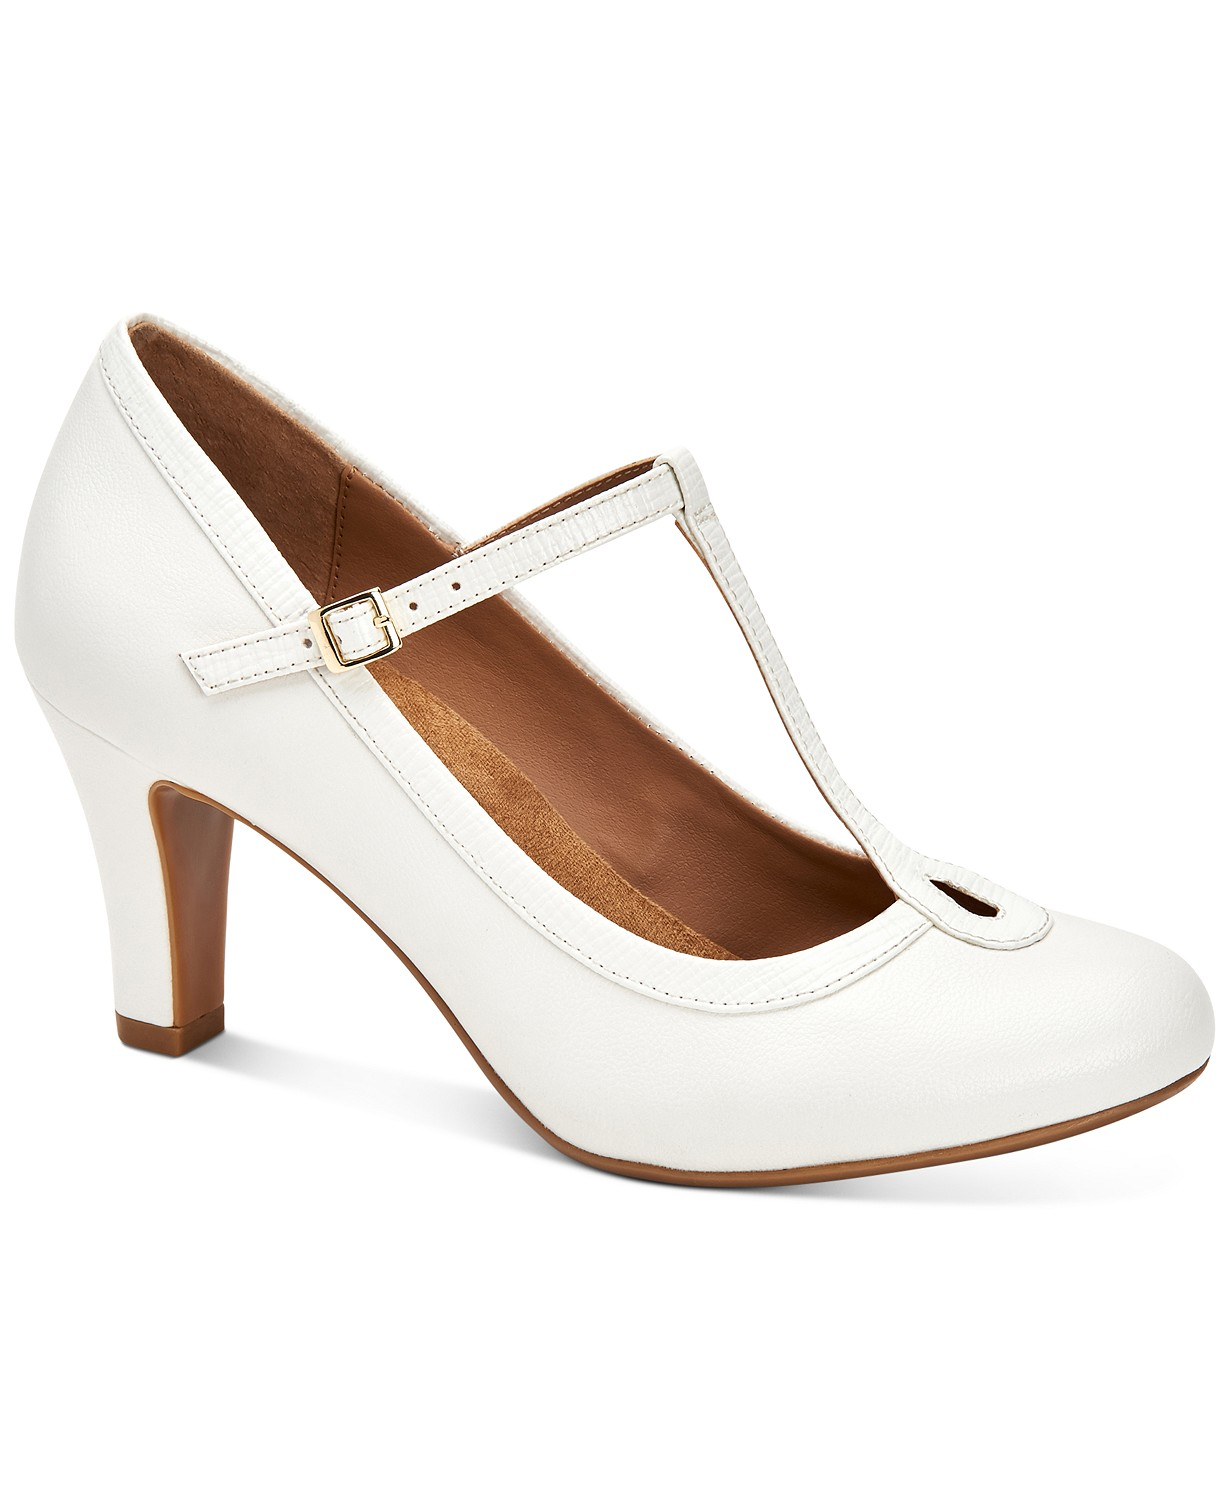 Varinaa T-Strap Pumps, Created for Macy's